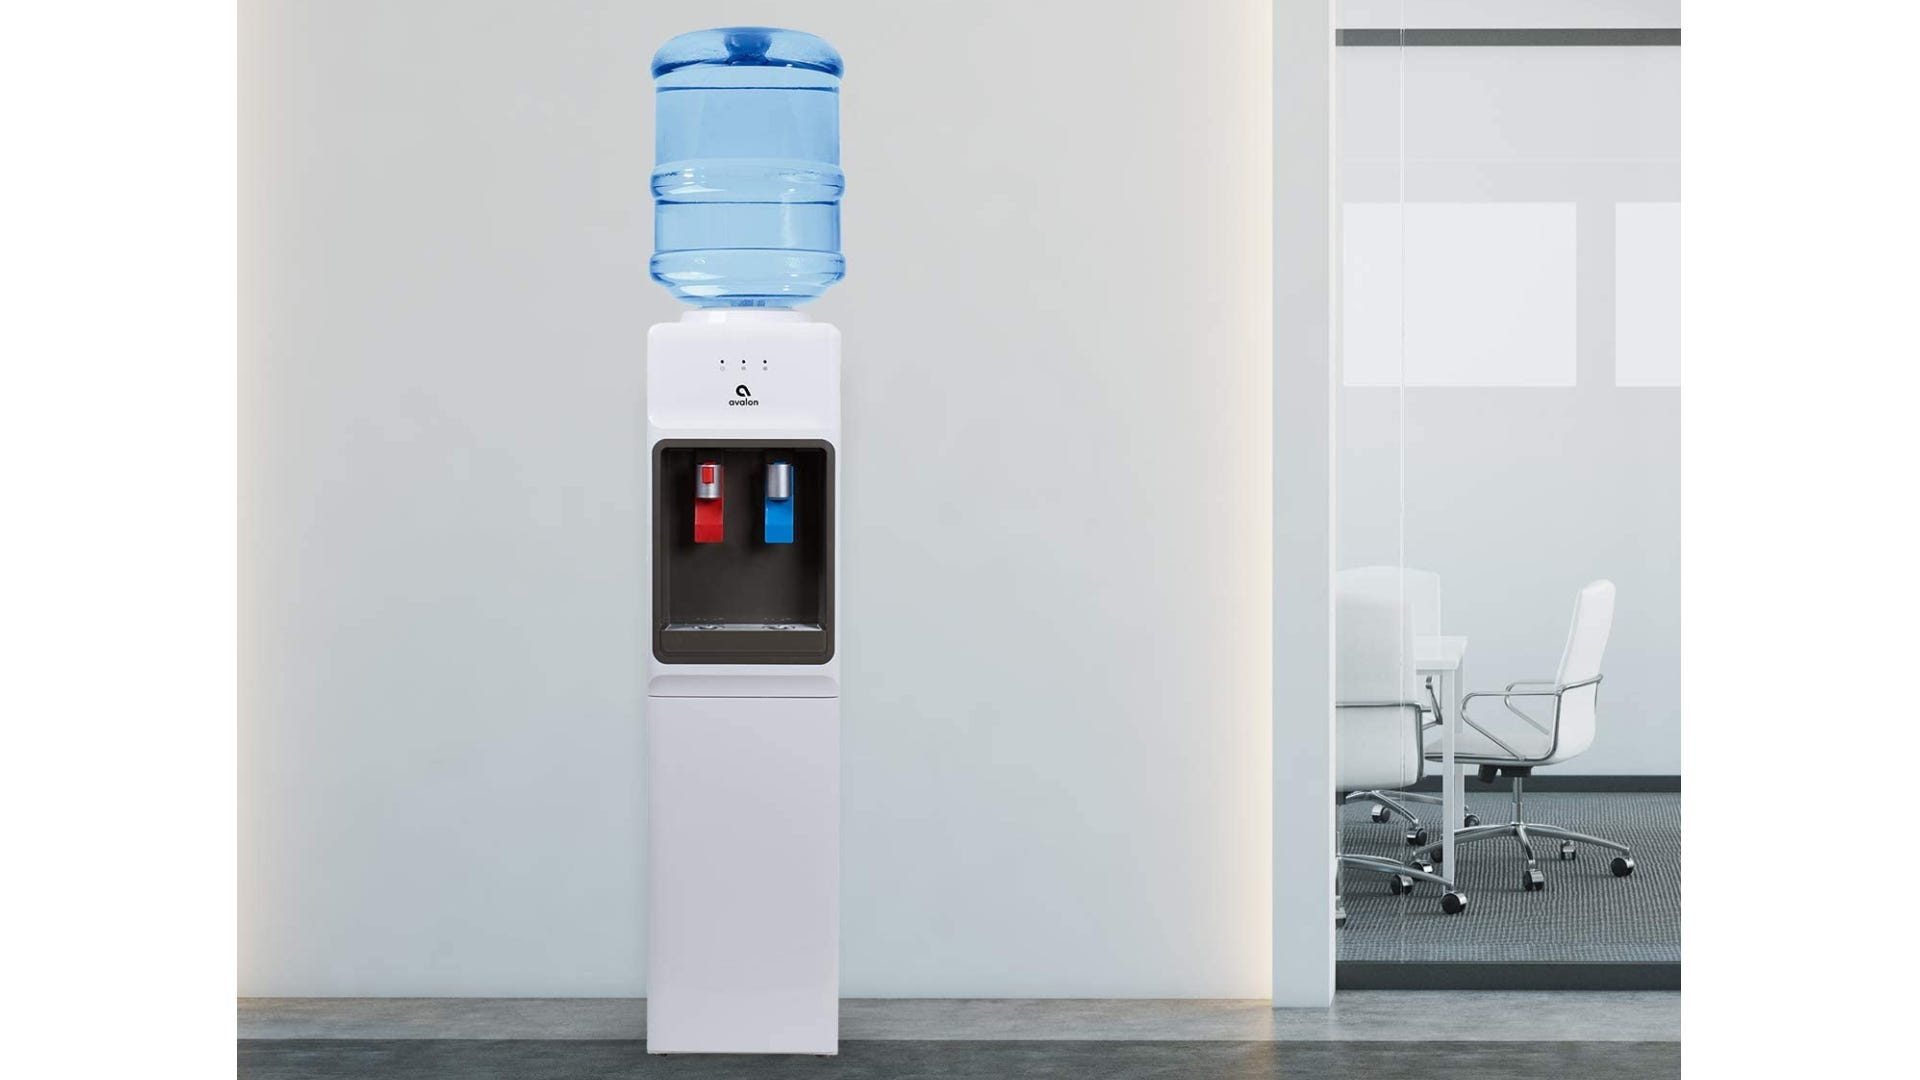 A whit water cooler with a blue jug sitting in an office.